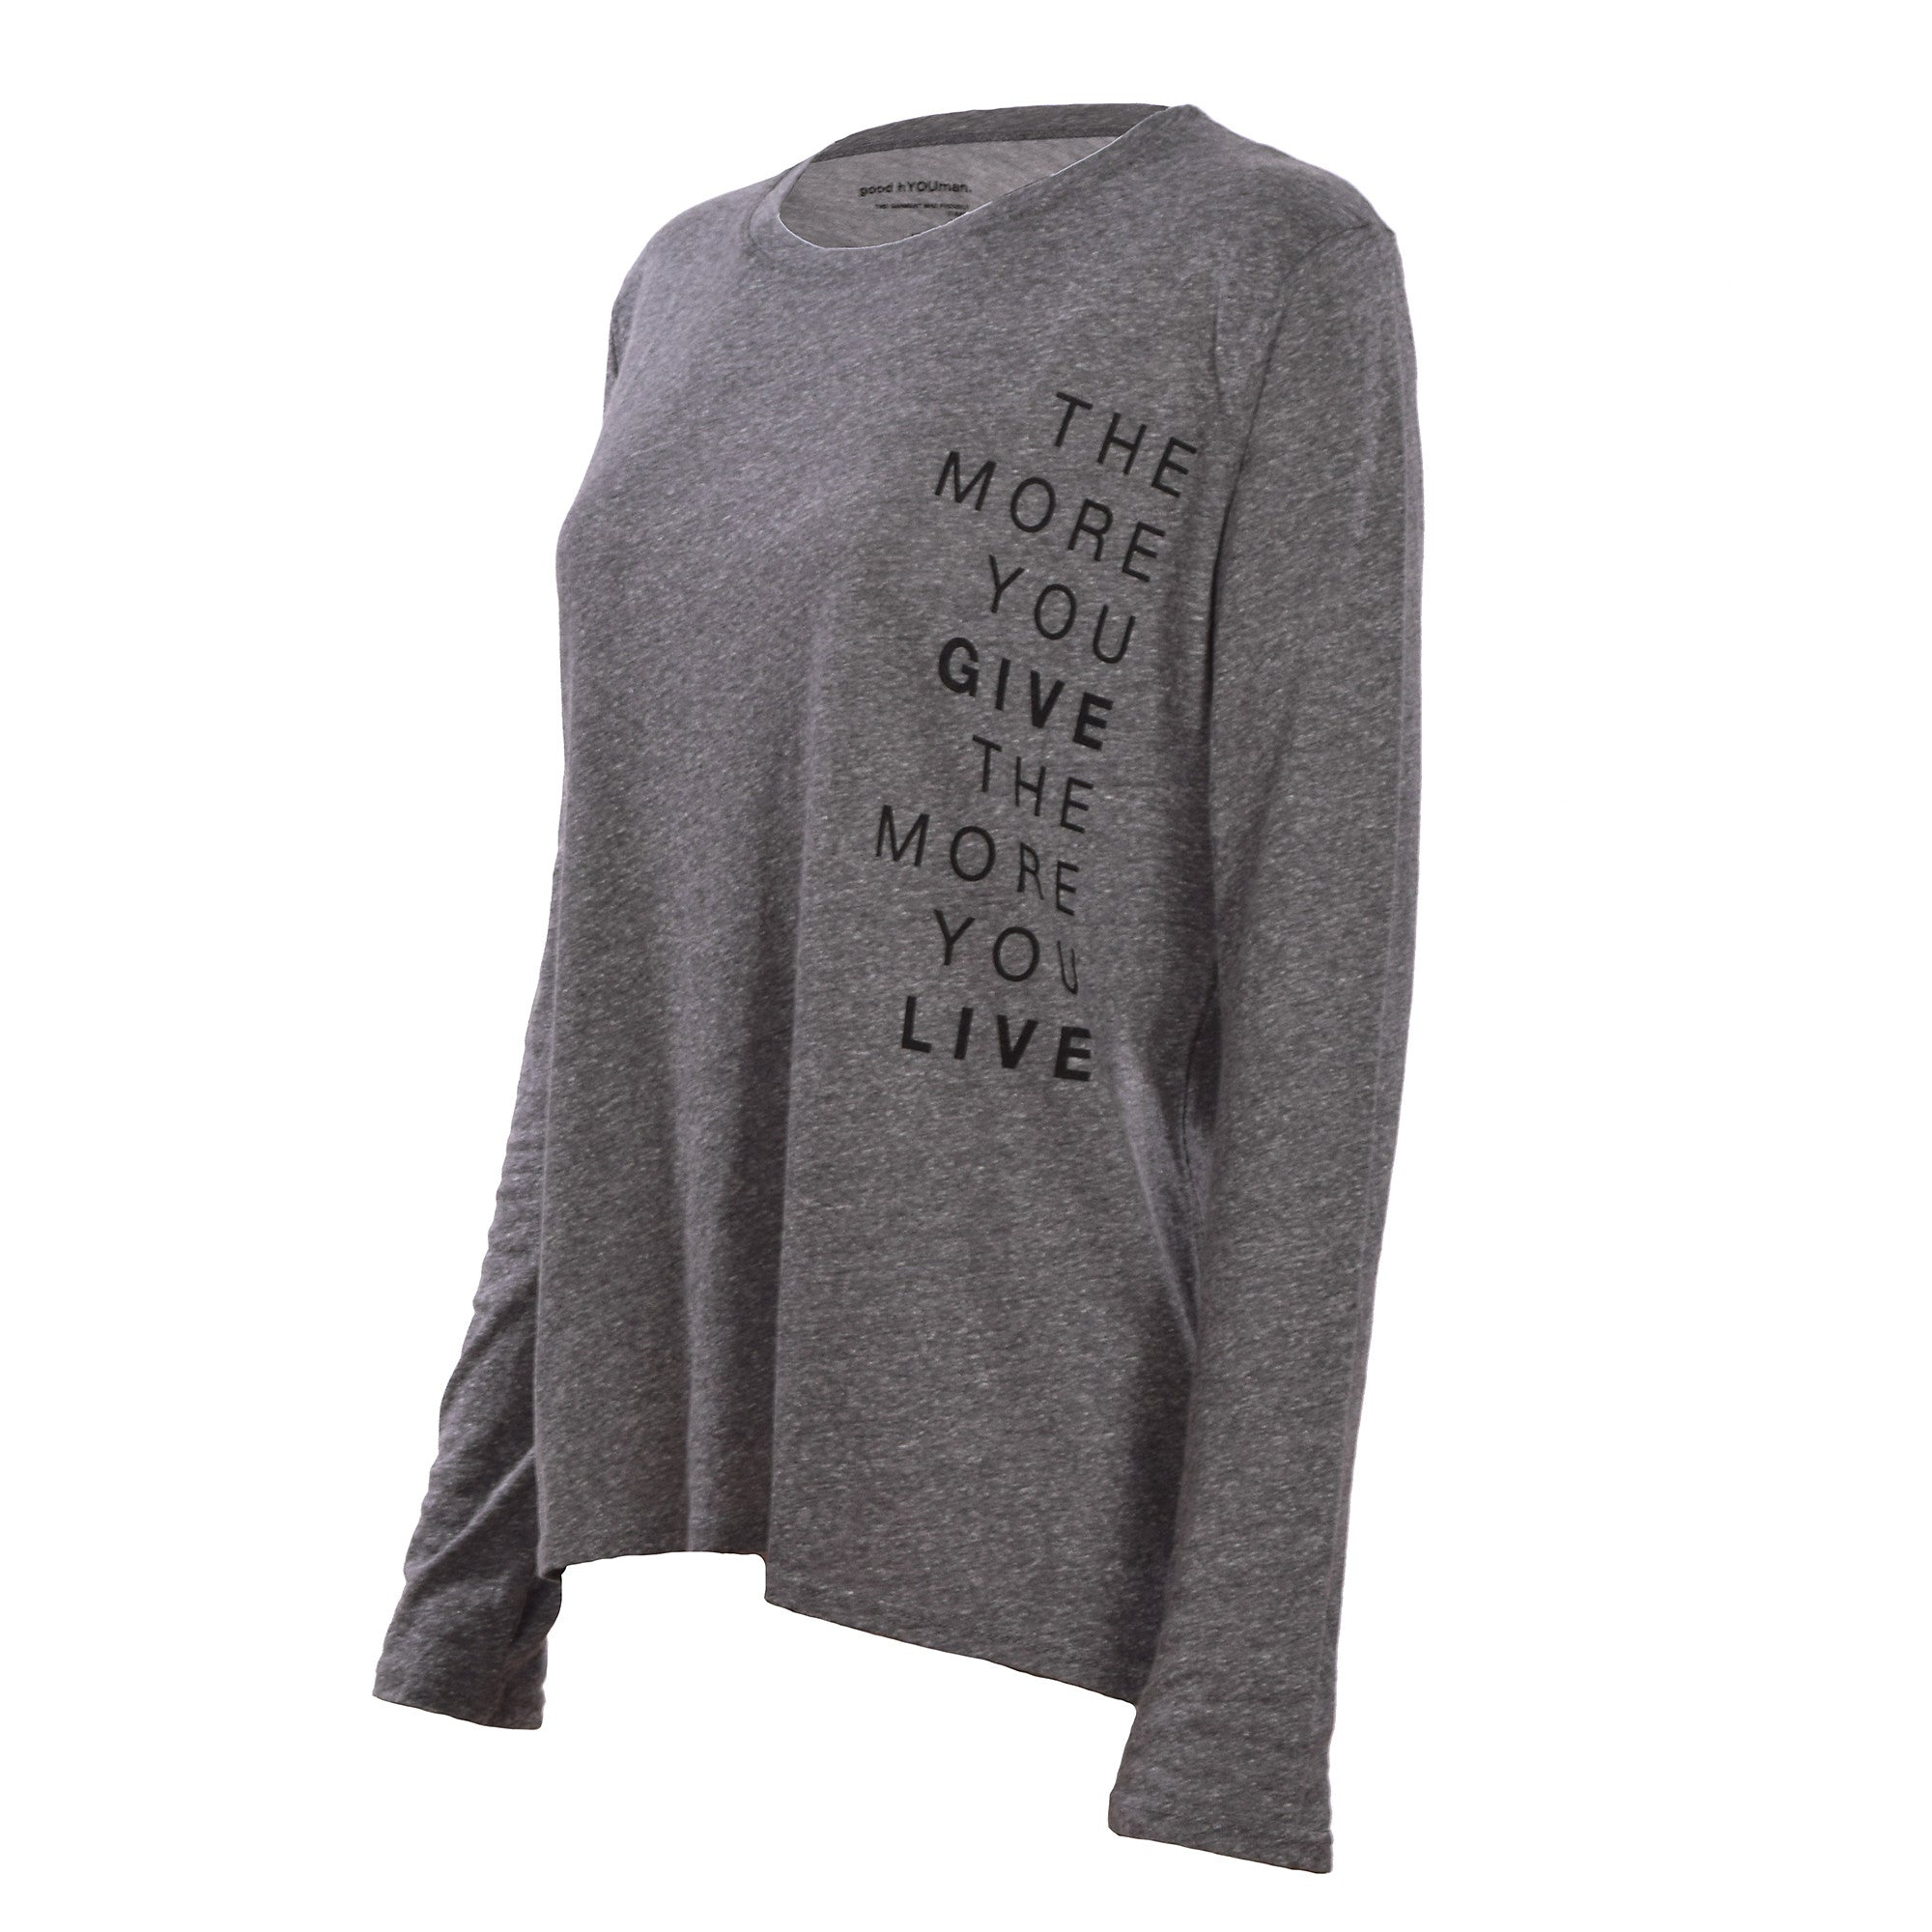 Good hYOUman Suzanne Tee - 'The More You Live the More You Give'